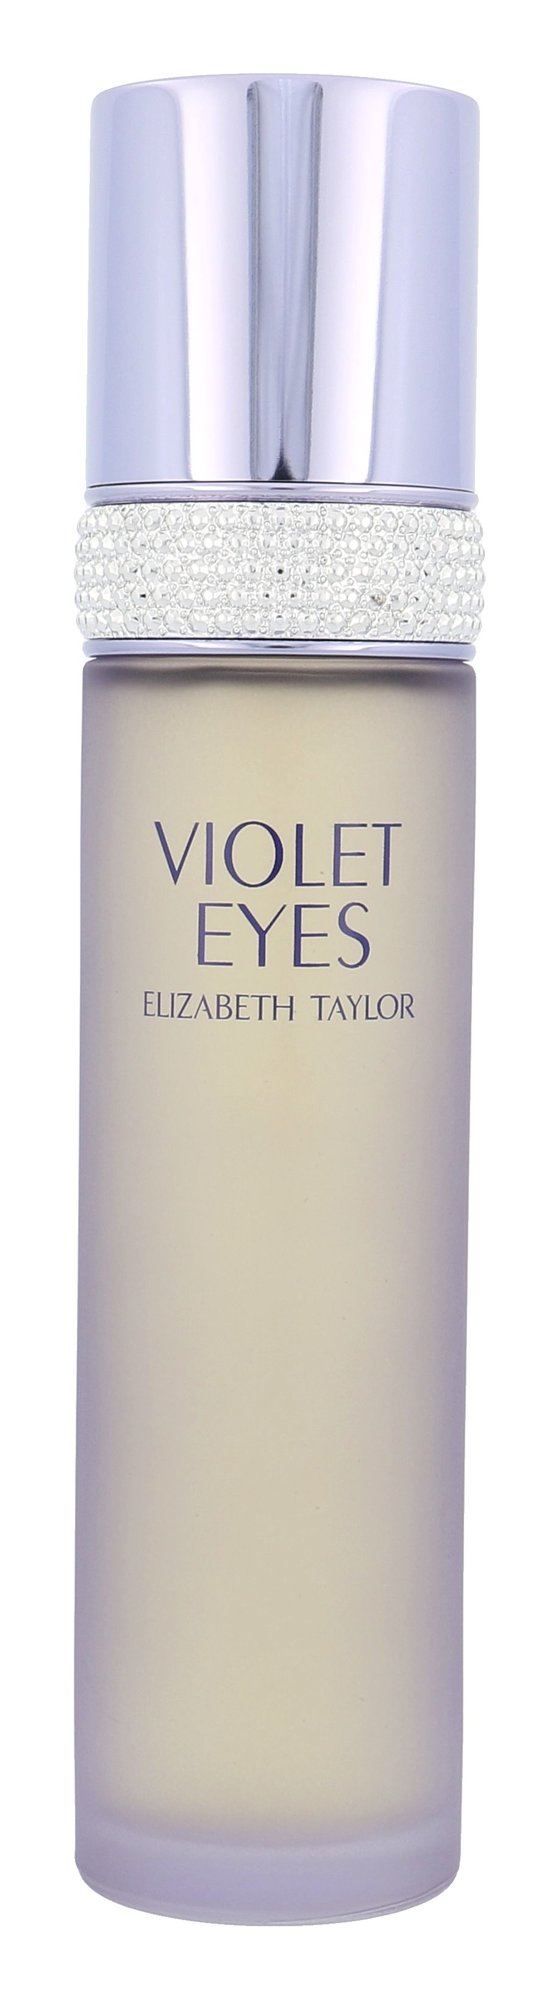 Elizabeth Taylor Violet Eyes EDP 100ml